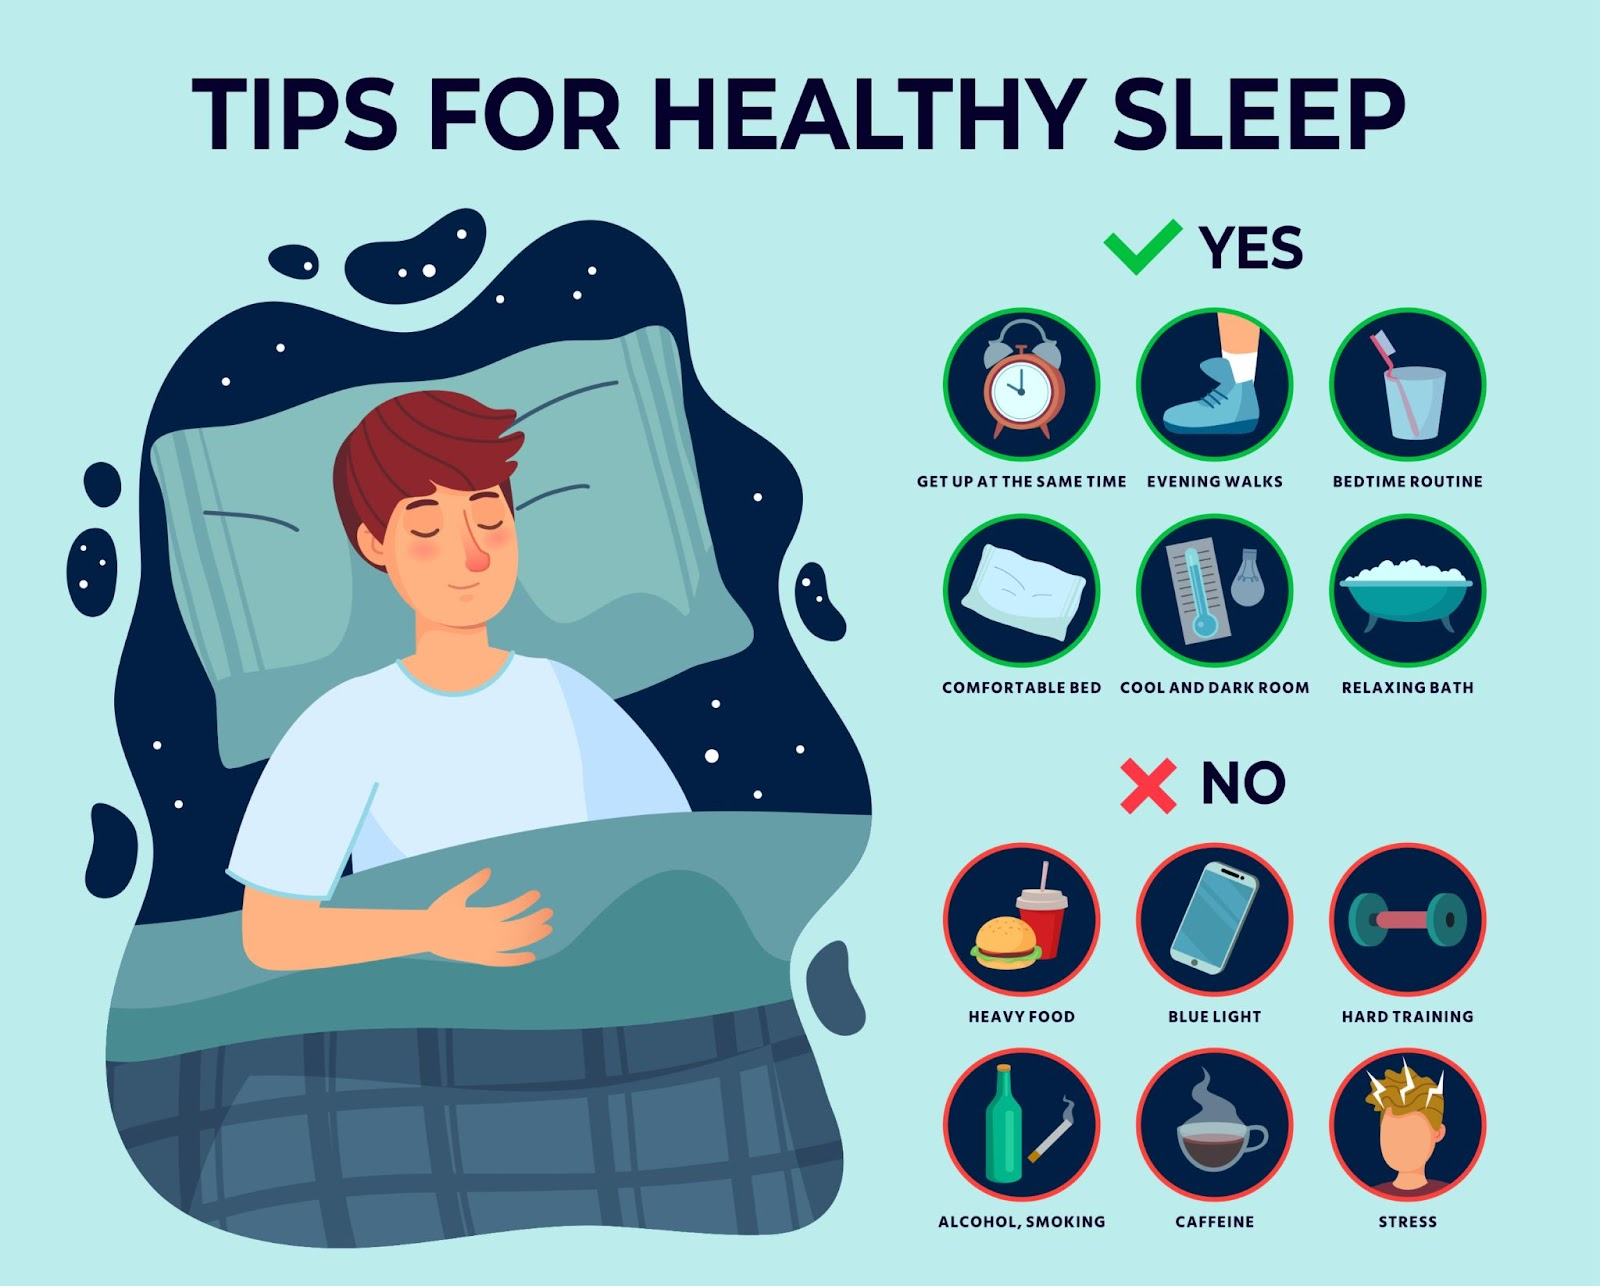 Studies have shown that getting adequate sleep each night can help to prevent Alzheimer's disease naturally.